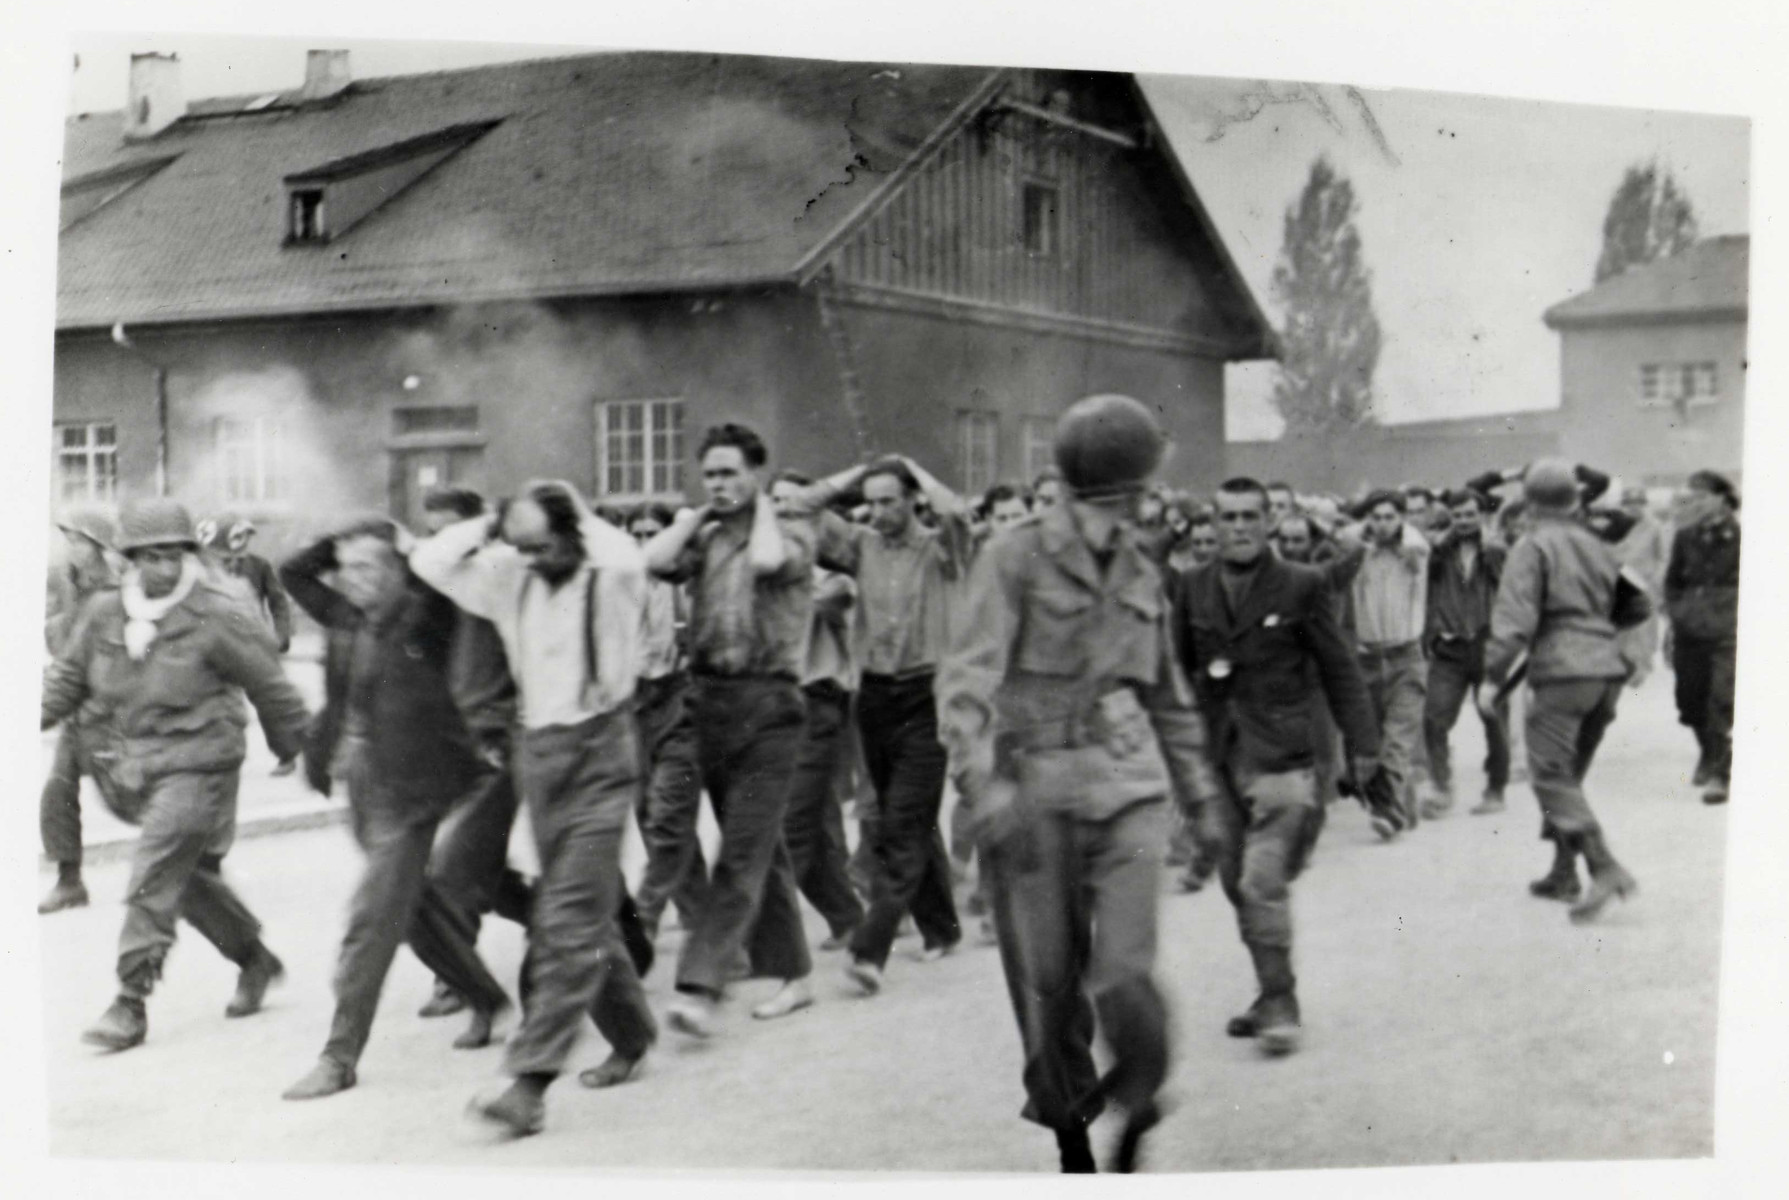 German personnel at Dachau are rounded up by American soldiers.